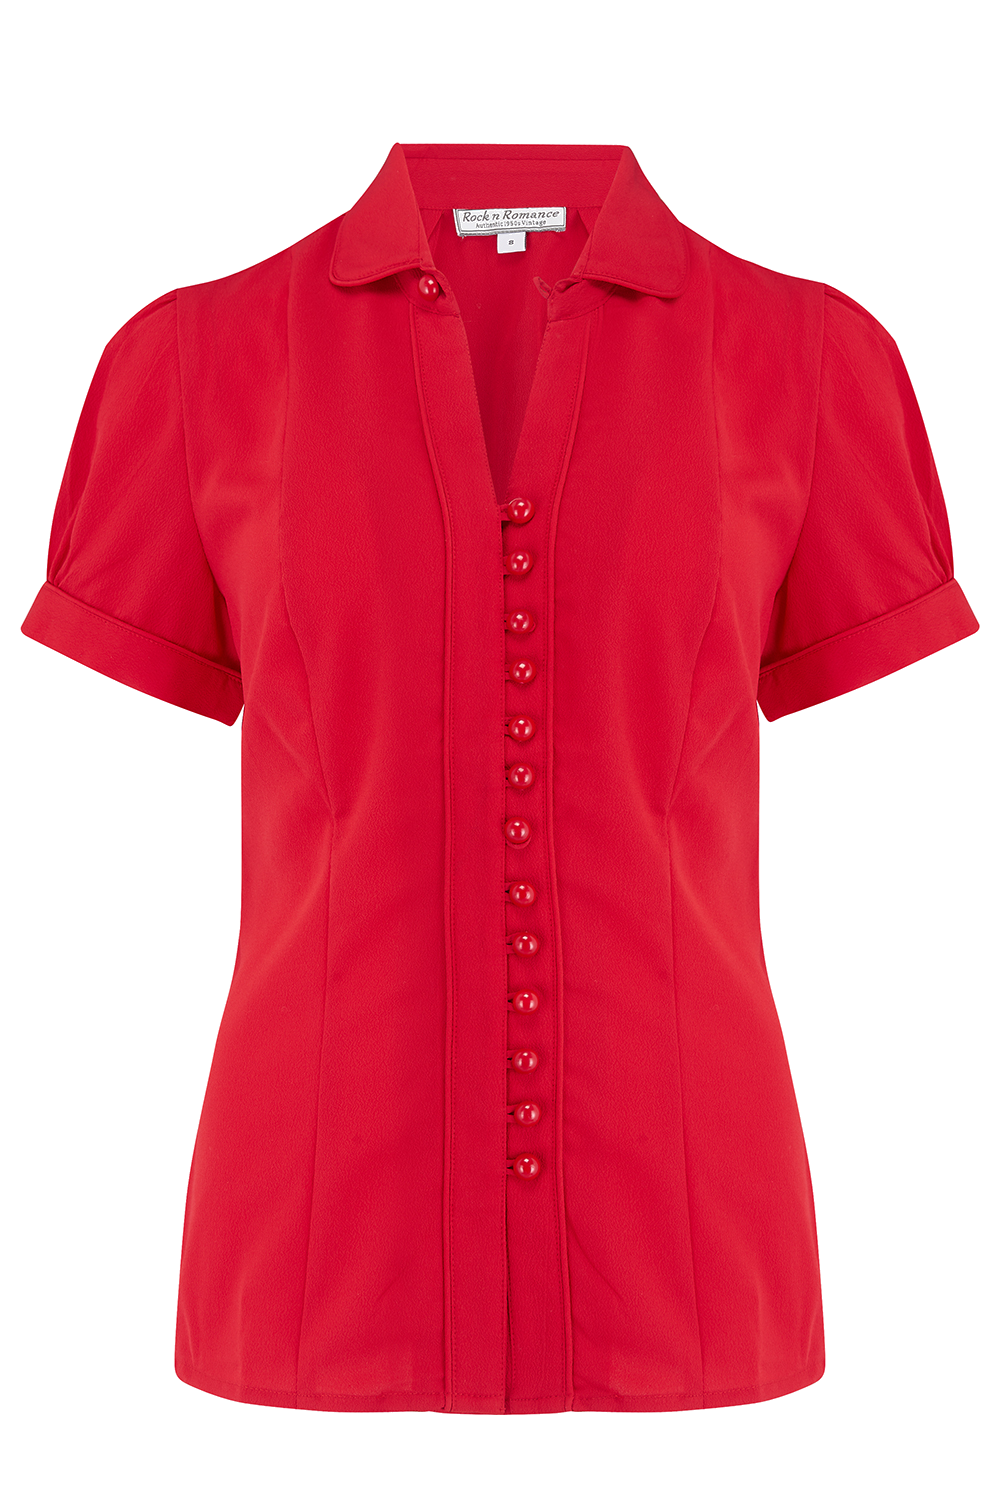 Red Margot blouse - Isabel's Retro & Vintage Clothing